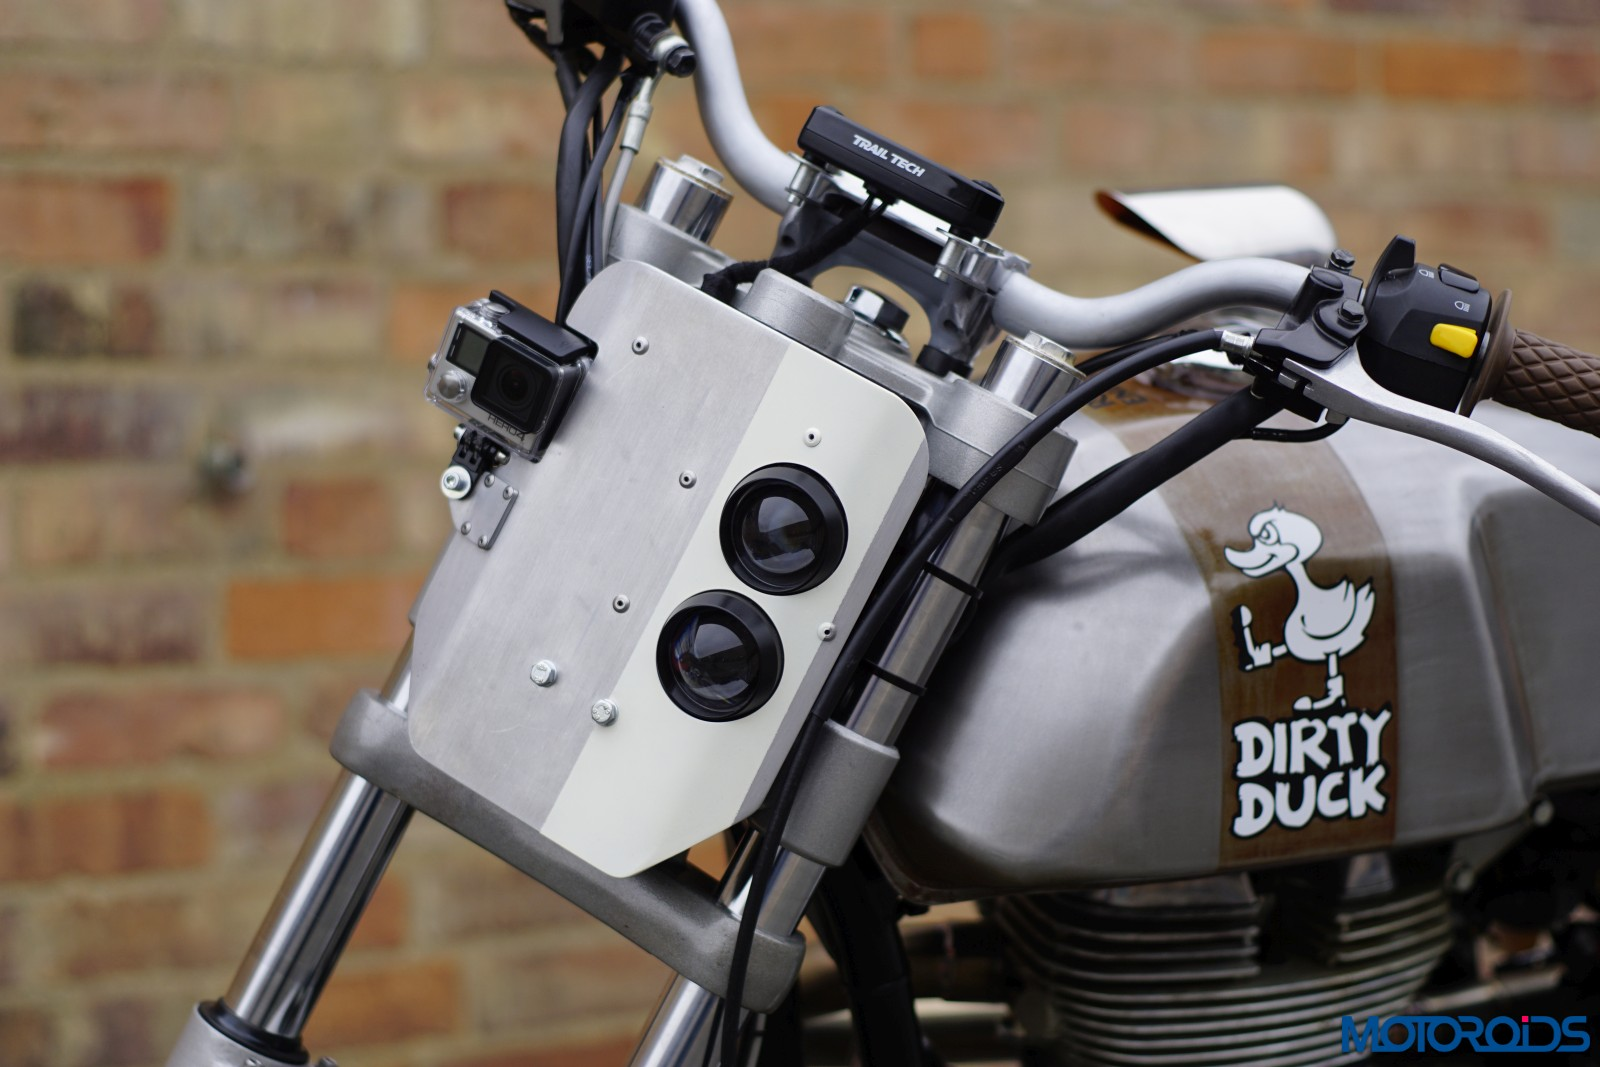 Royal Enfield Dirty Duck - WW Customs (1)